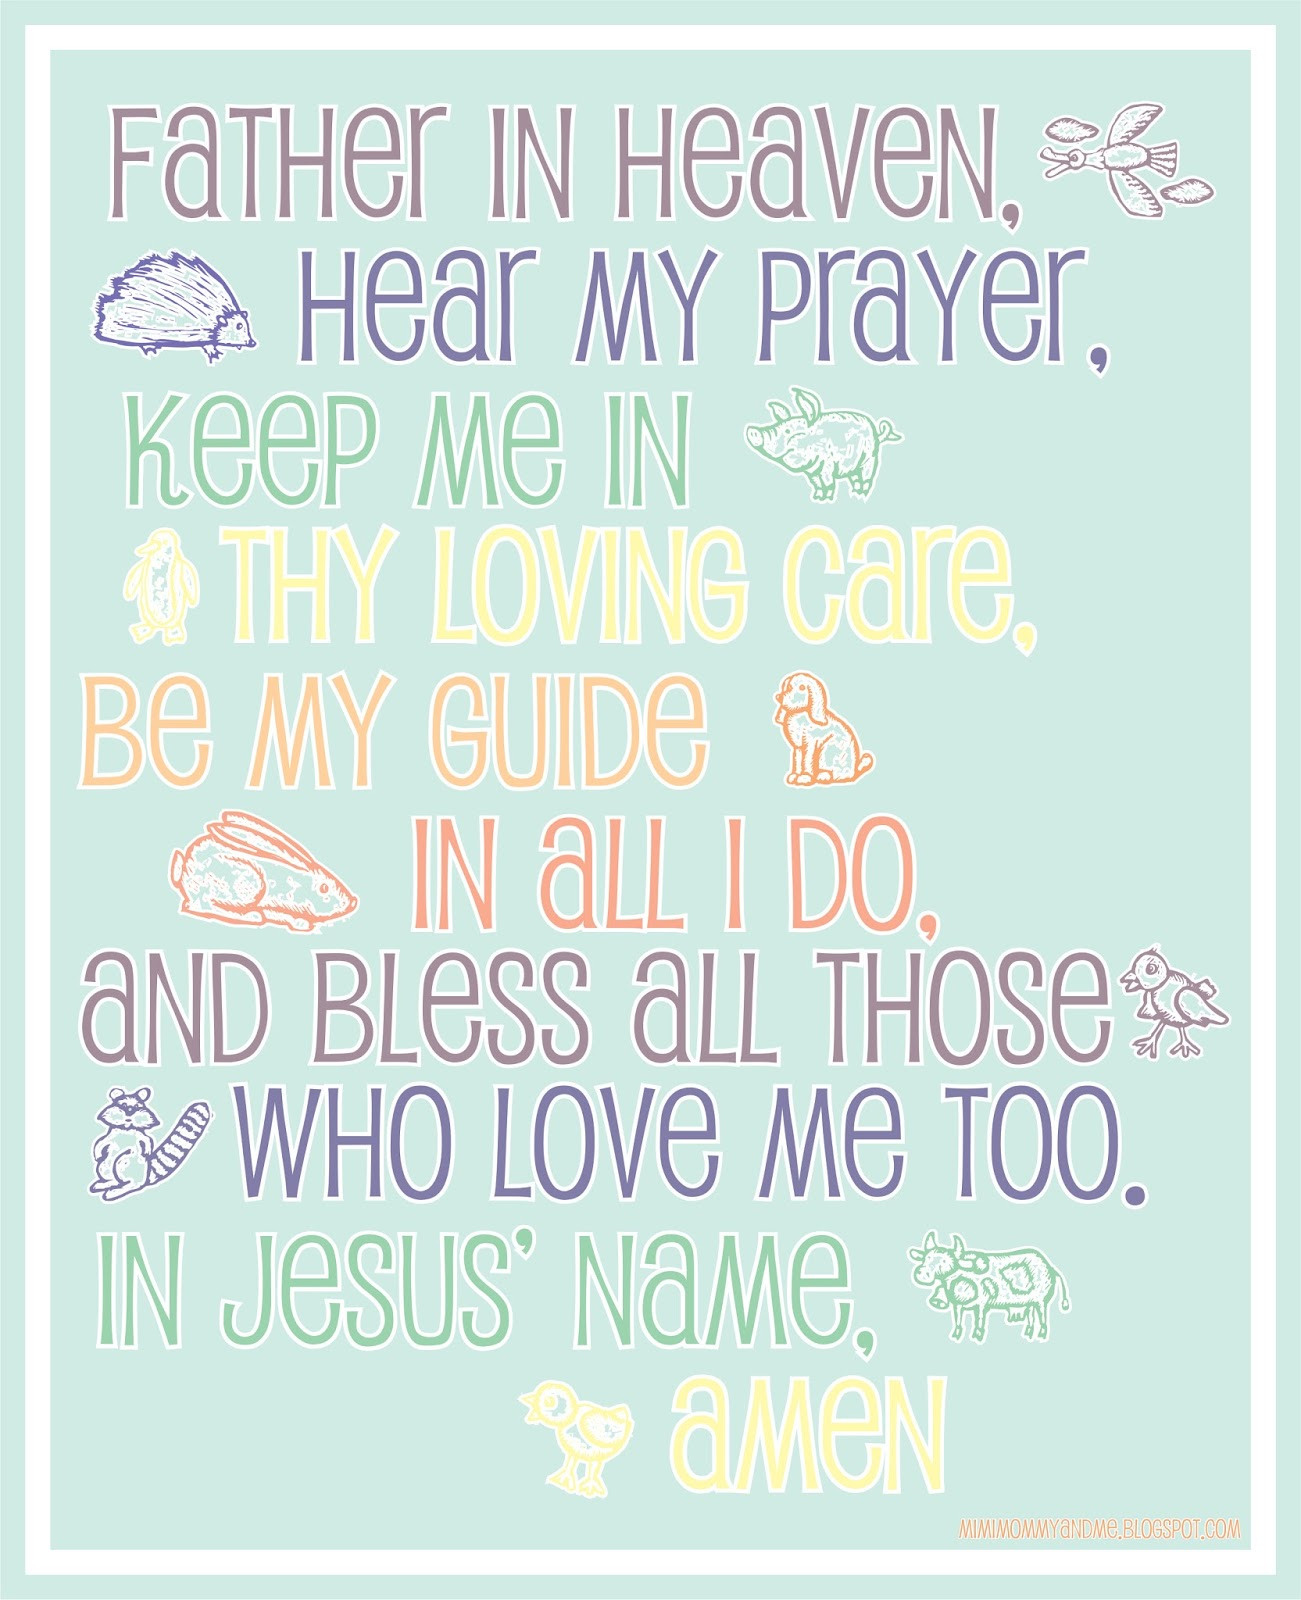 http://mimimommyandme.blogspot.com/2014/05/a-childs-prayer-free-printable.html #ChildsPrayer #Prayer #ChildrenPrayer